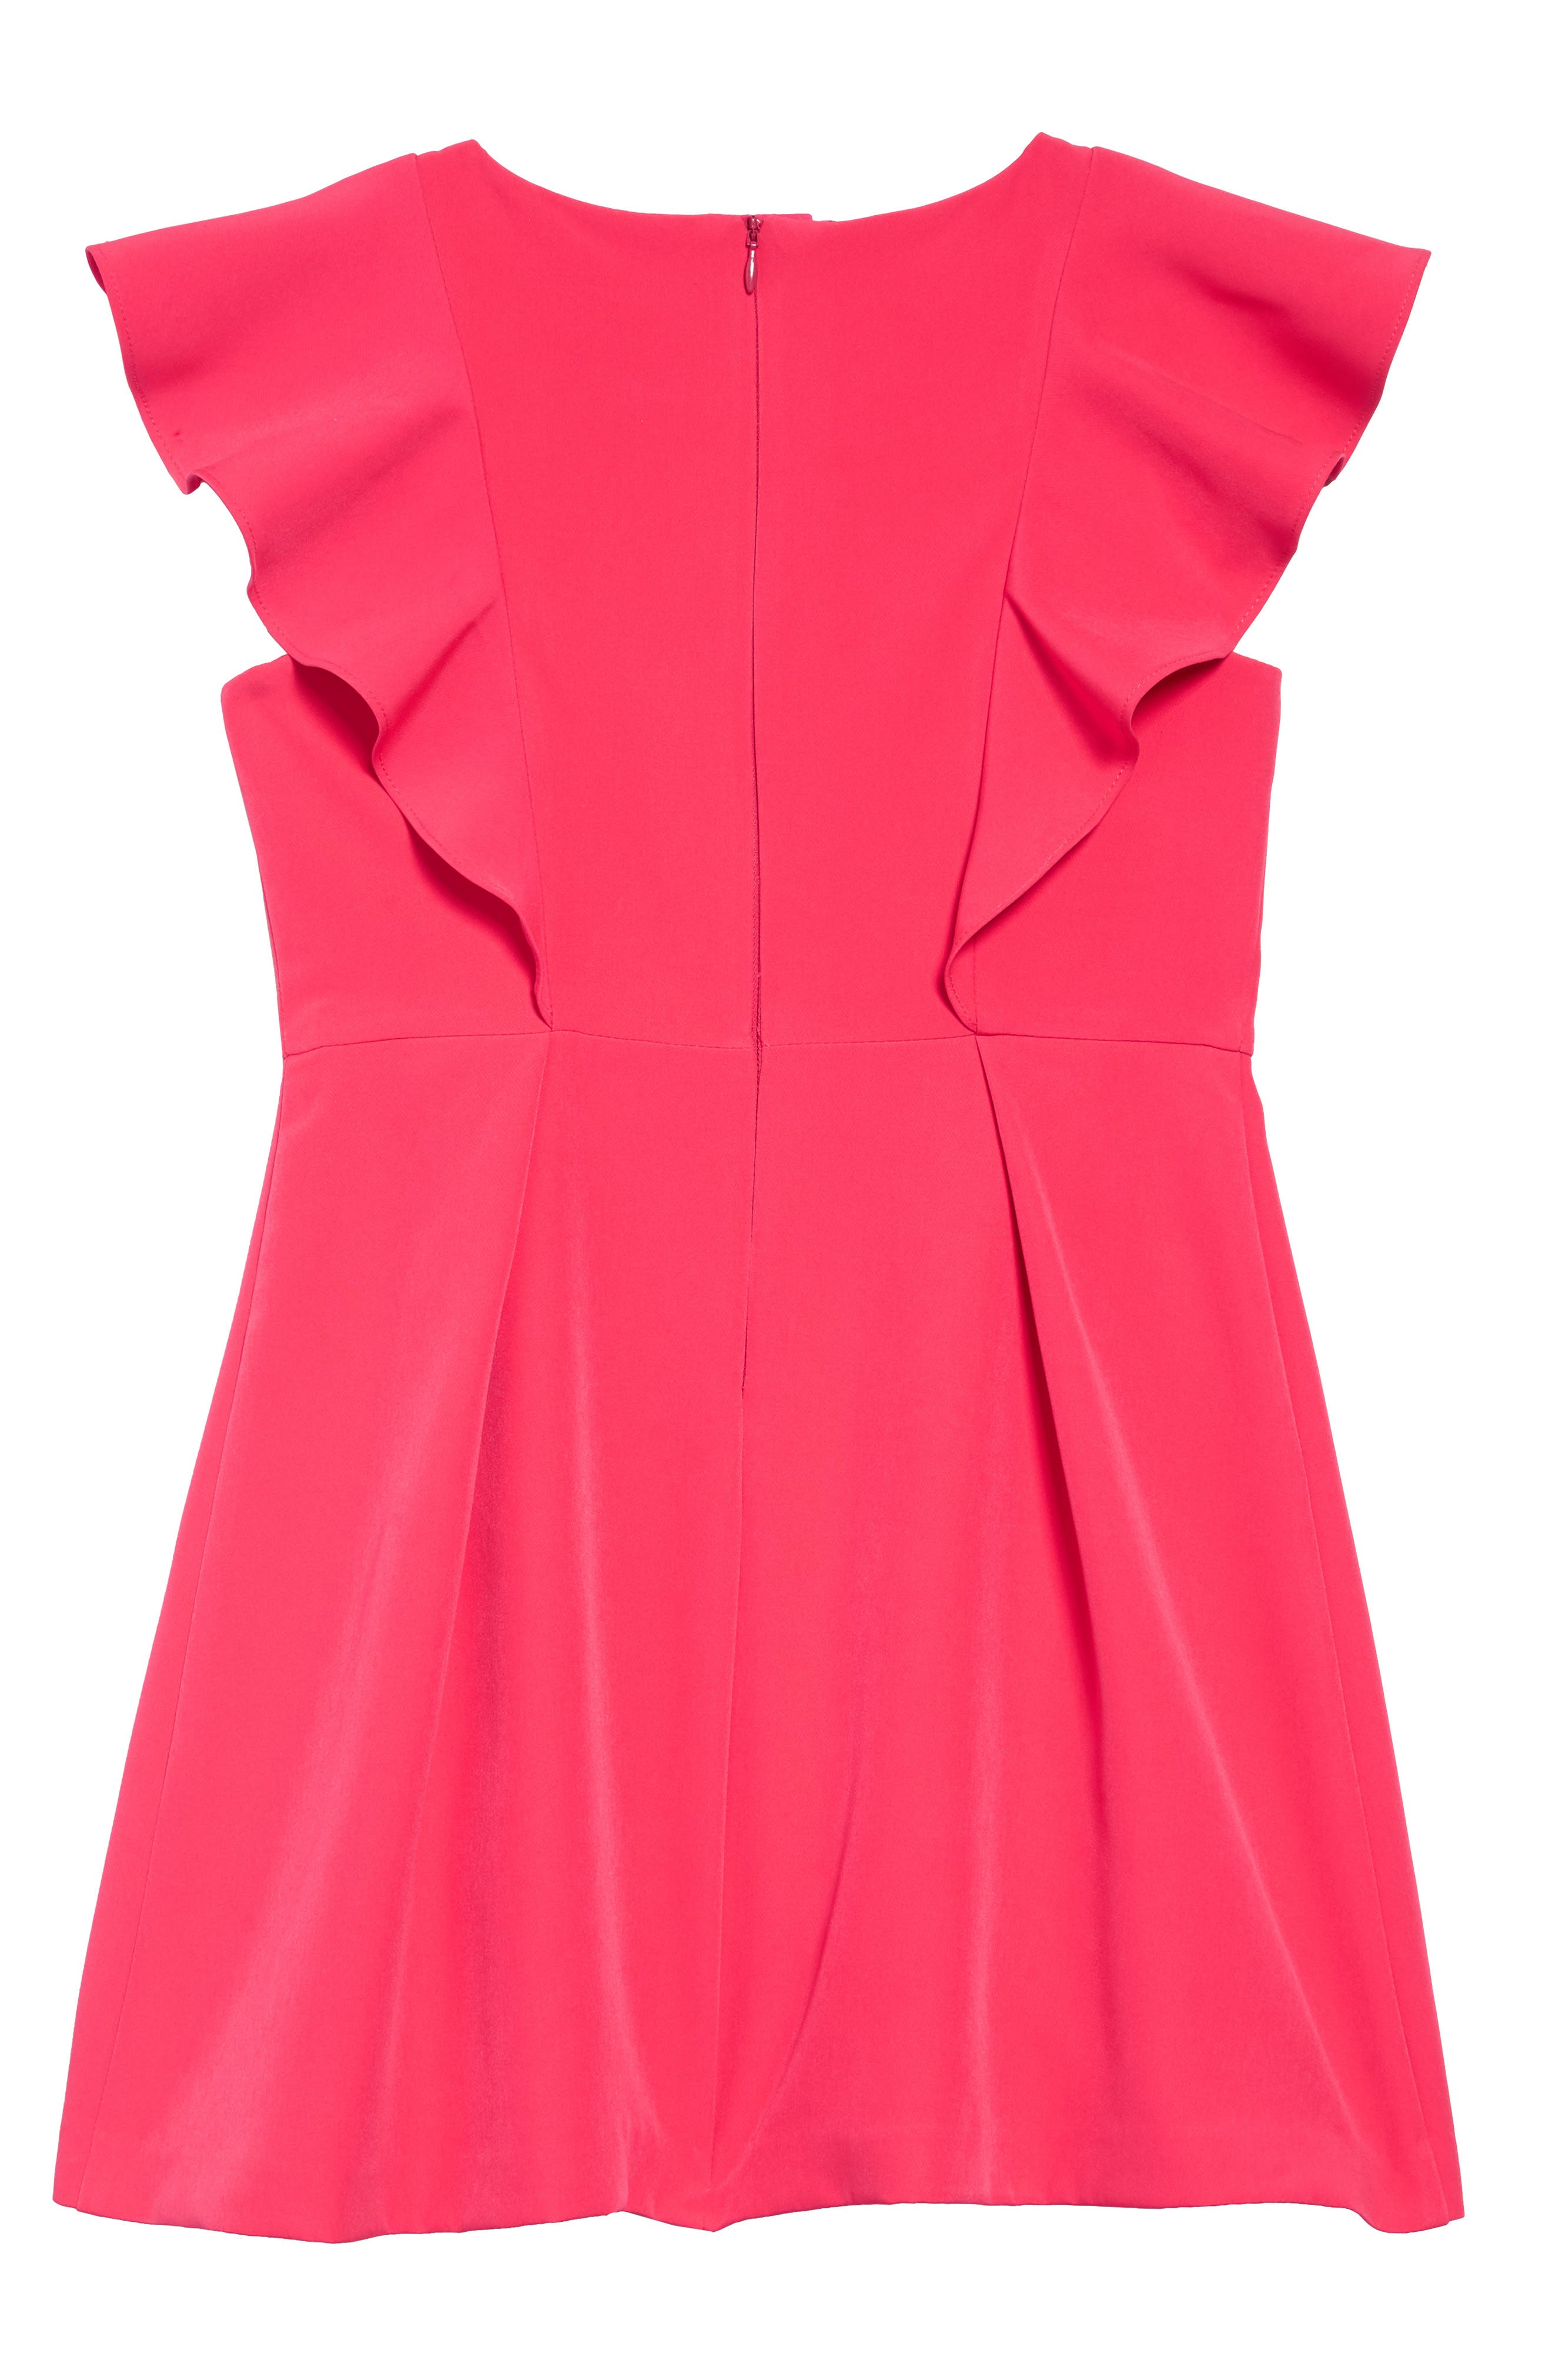 MILLY MINIS,                             Rylie Cady Ruffle Dress,                             Alternate thumbnail 2, color,                             GUAVA